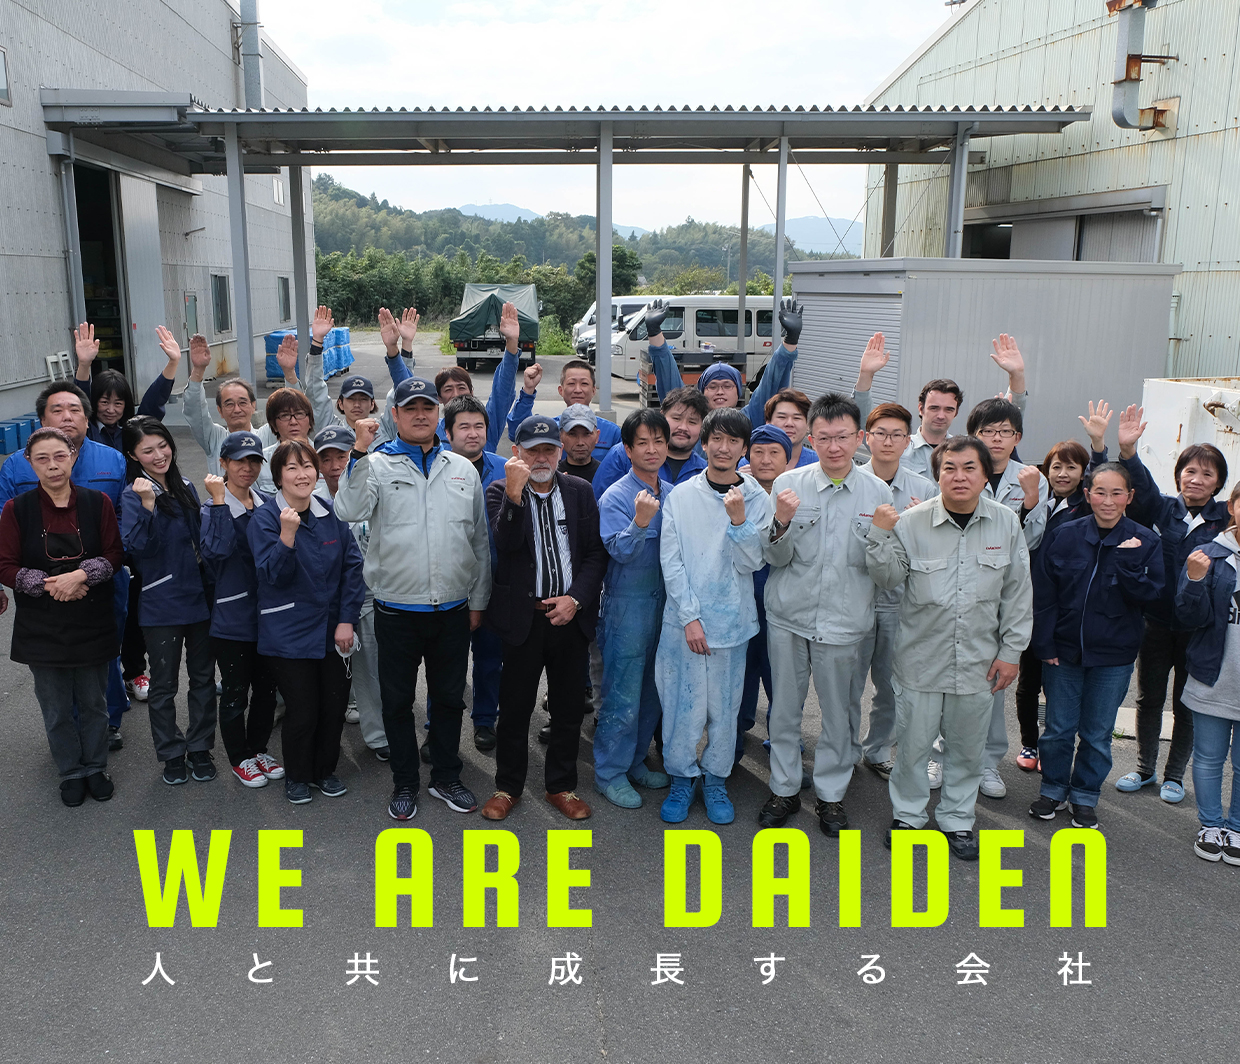 WE ARE DAIDEN